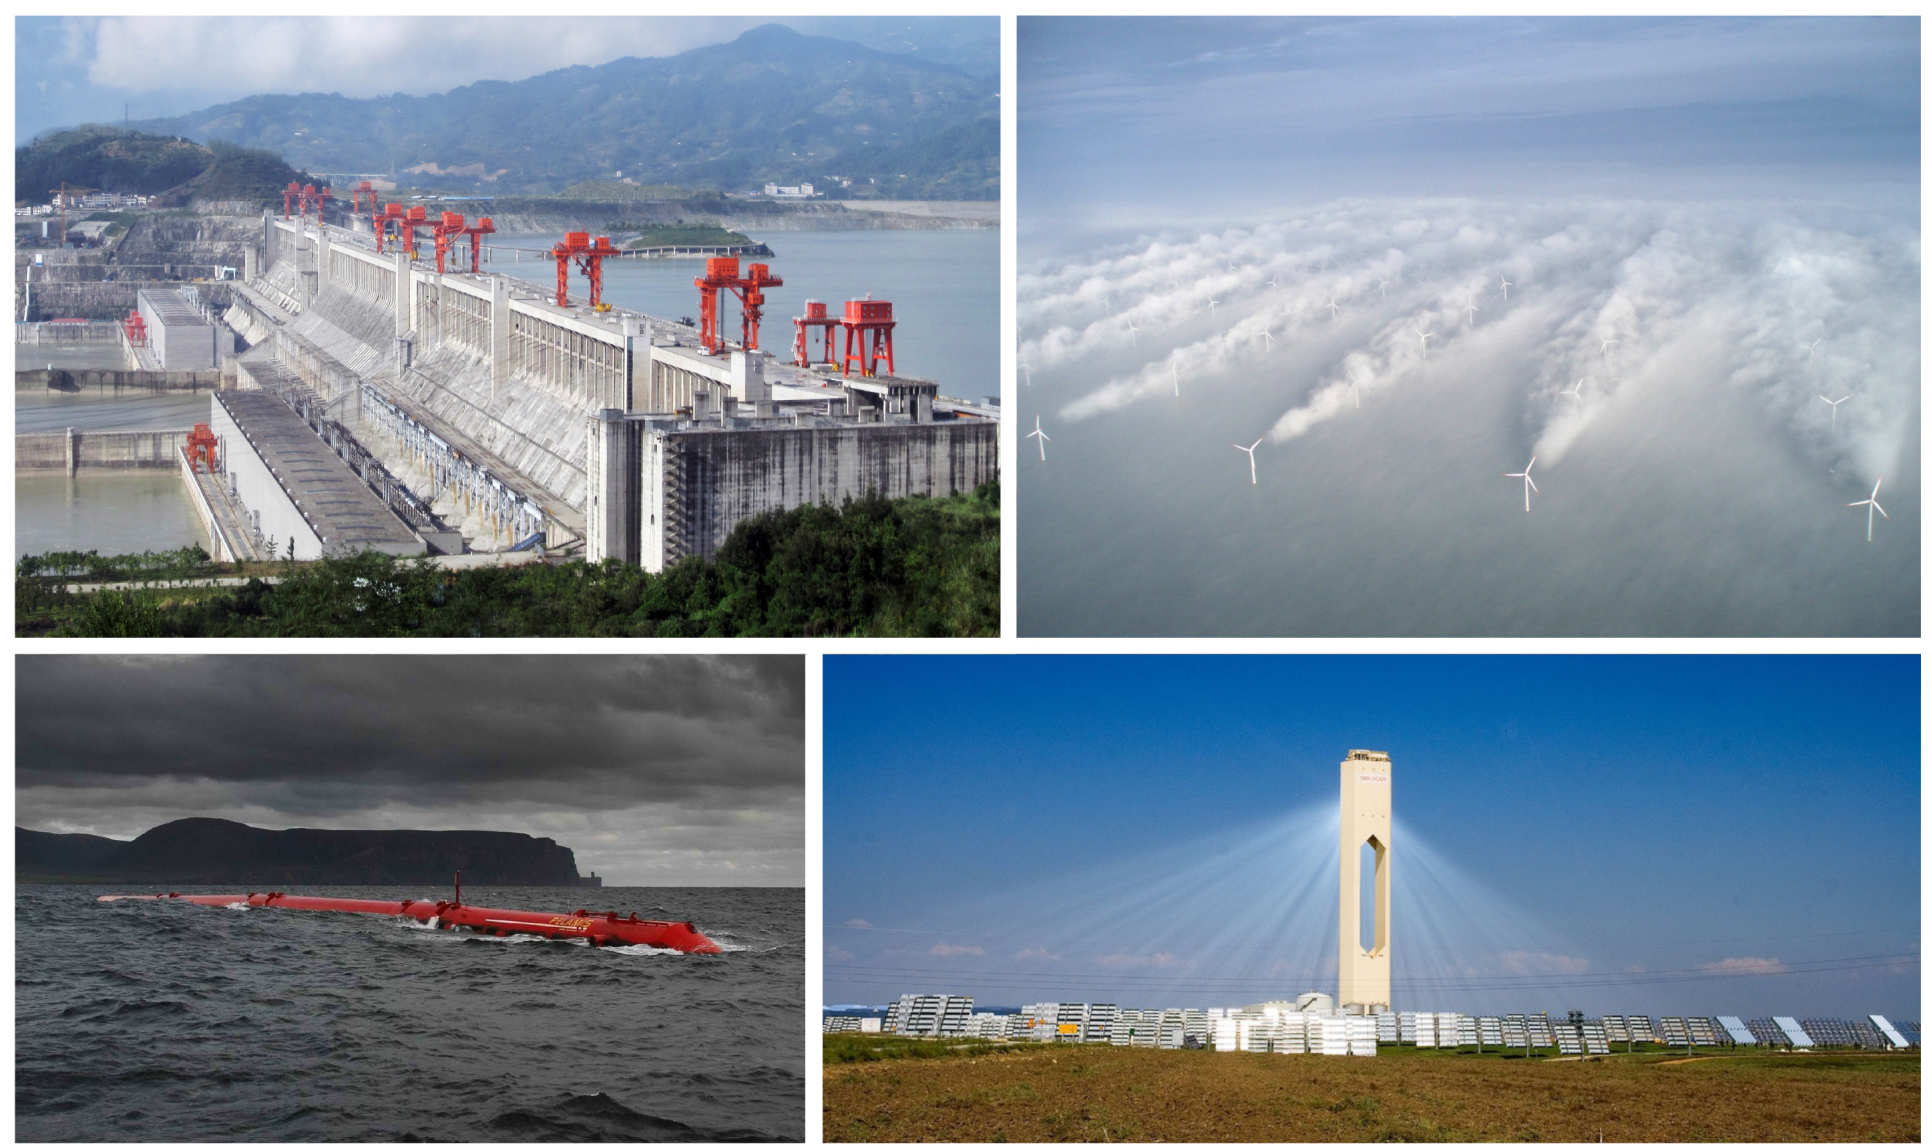 [Top-left] Three Gorges Dam, China, [Top-right] Wake from offshore wind turbine array, [Bottom-left] Pelamis wave energy converter, [Bottom-right] Solar power tower, Seville, Spain.